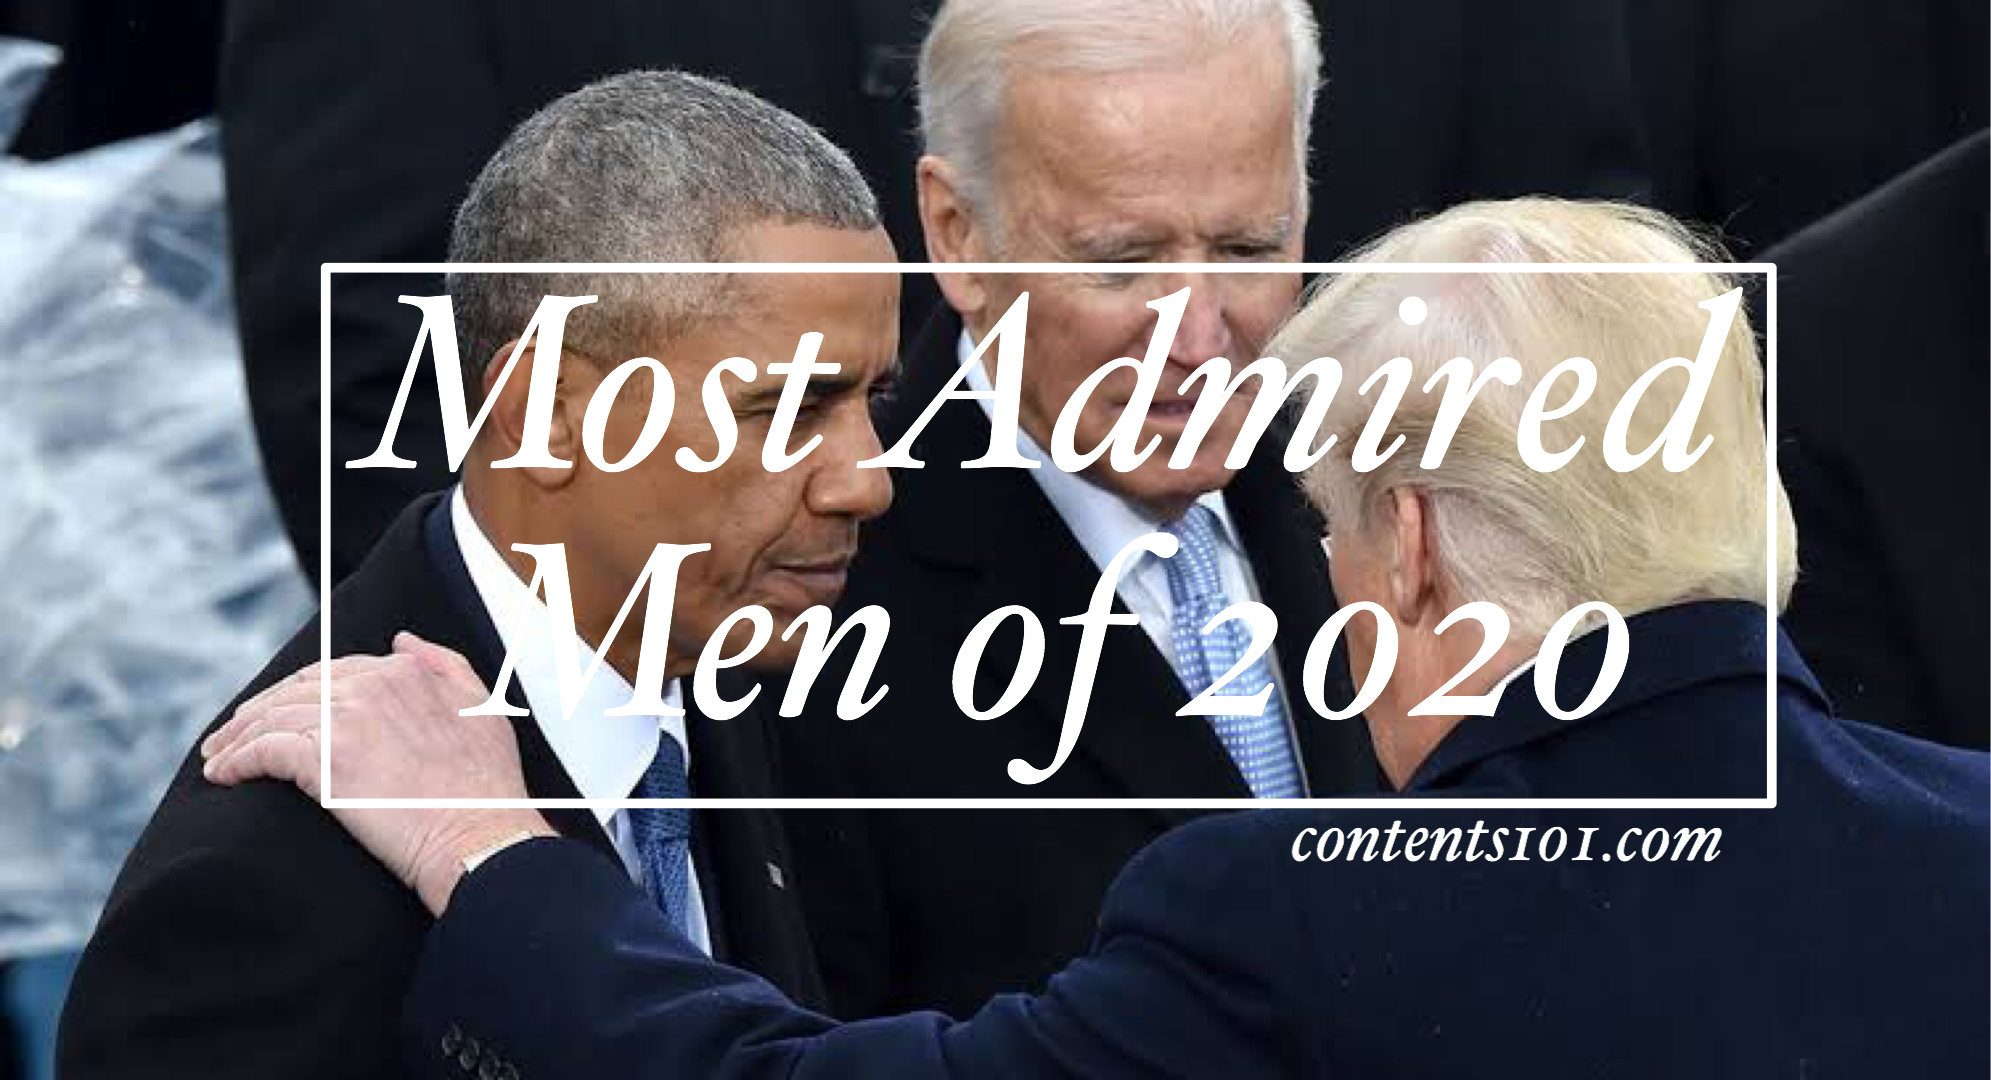 List of most admired men of 2020